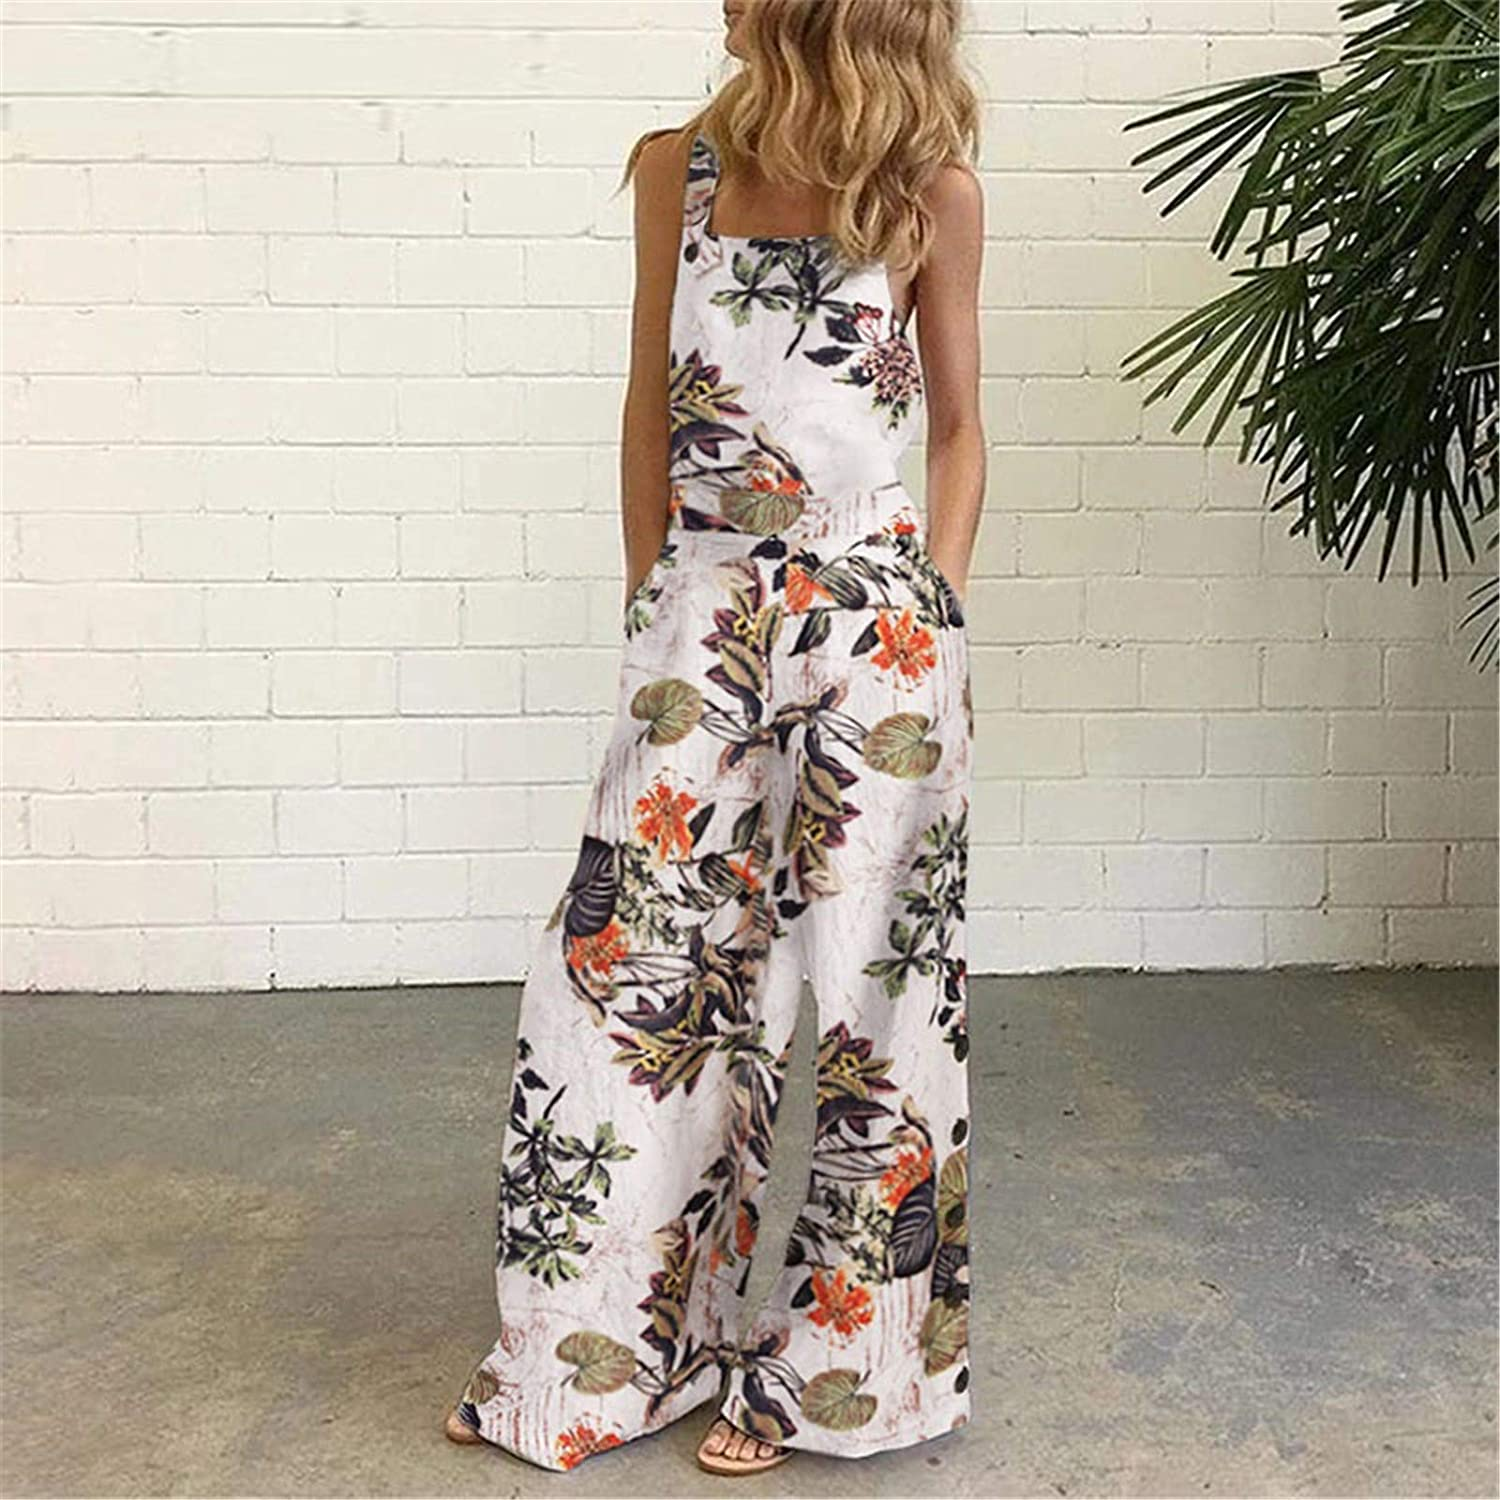 WUAI-Women Floral Printed Jumpsuits Summer Sleeveless Wide Leg Pants Rompers Loose Casual Jumpsuit Overalls Plus Size